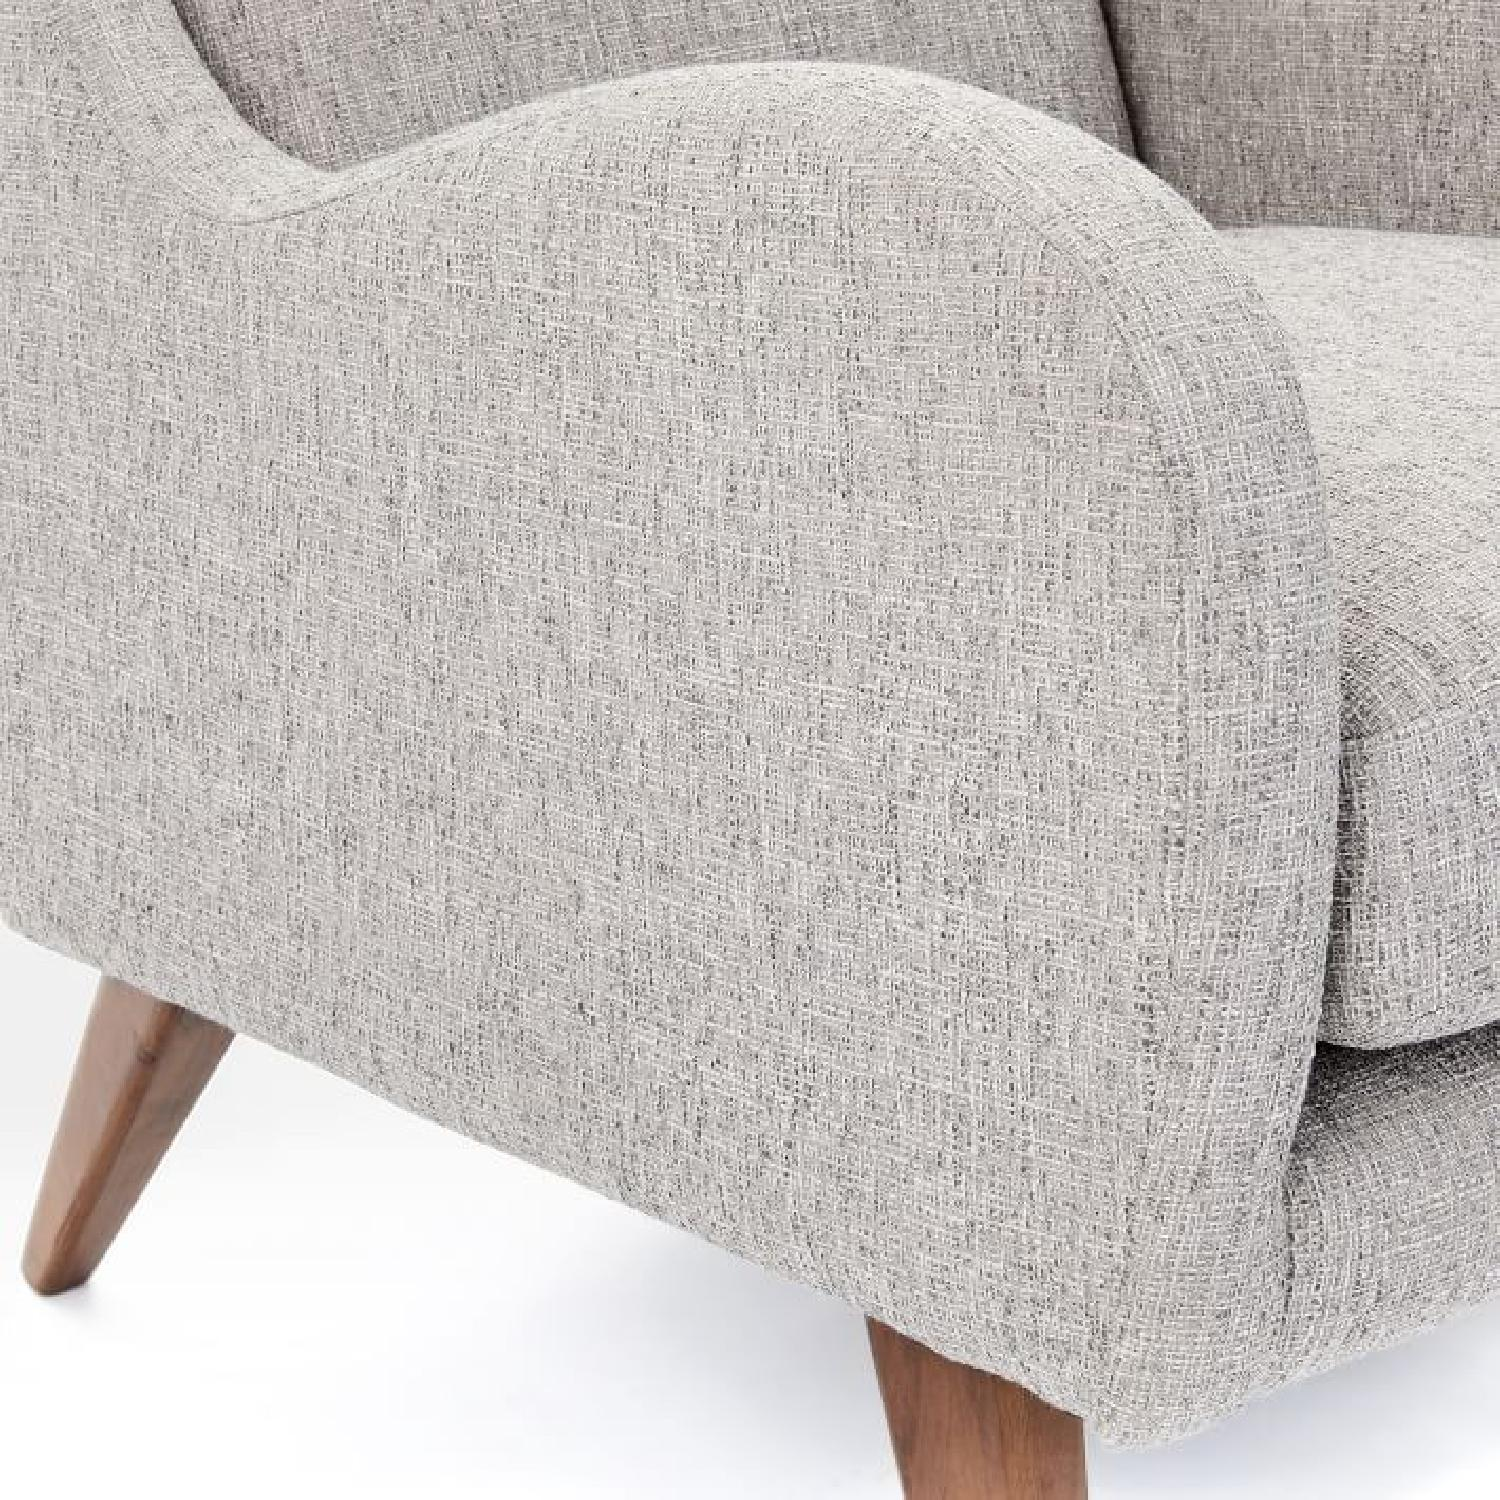 West Elm Sebastian Chair in Feather Gray - image-3